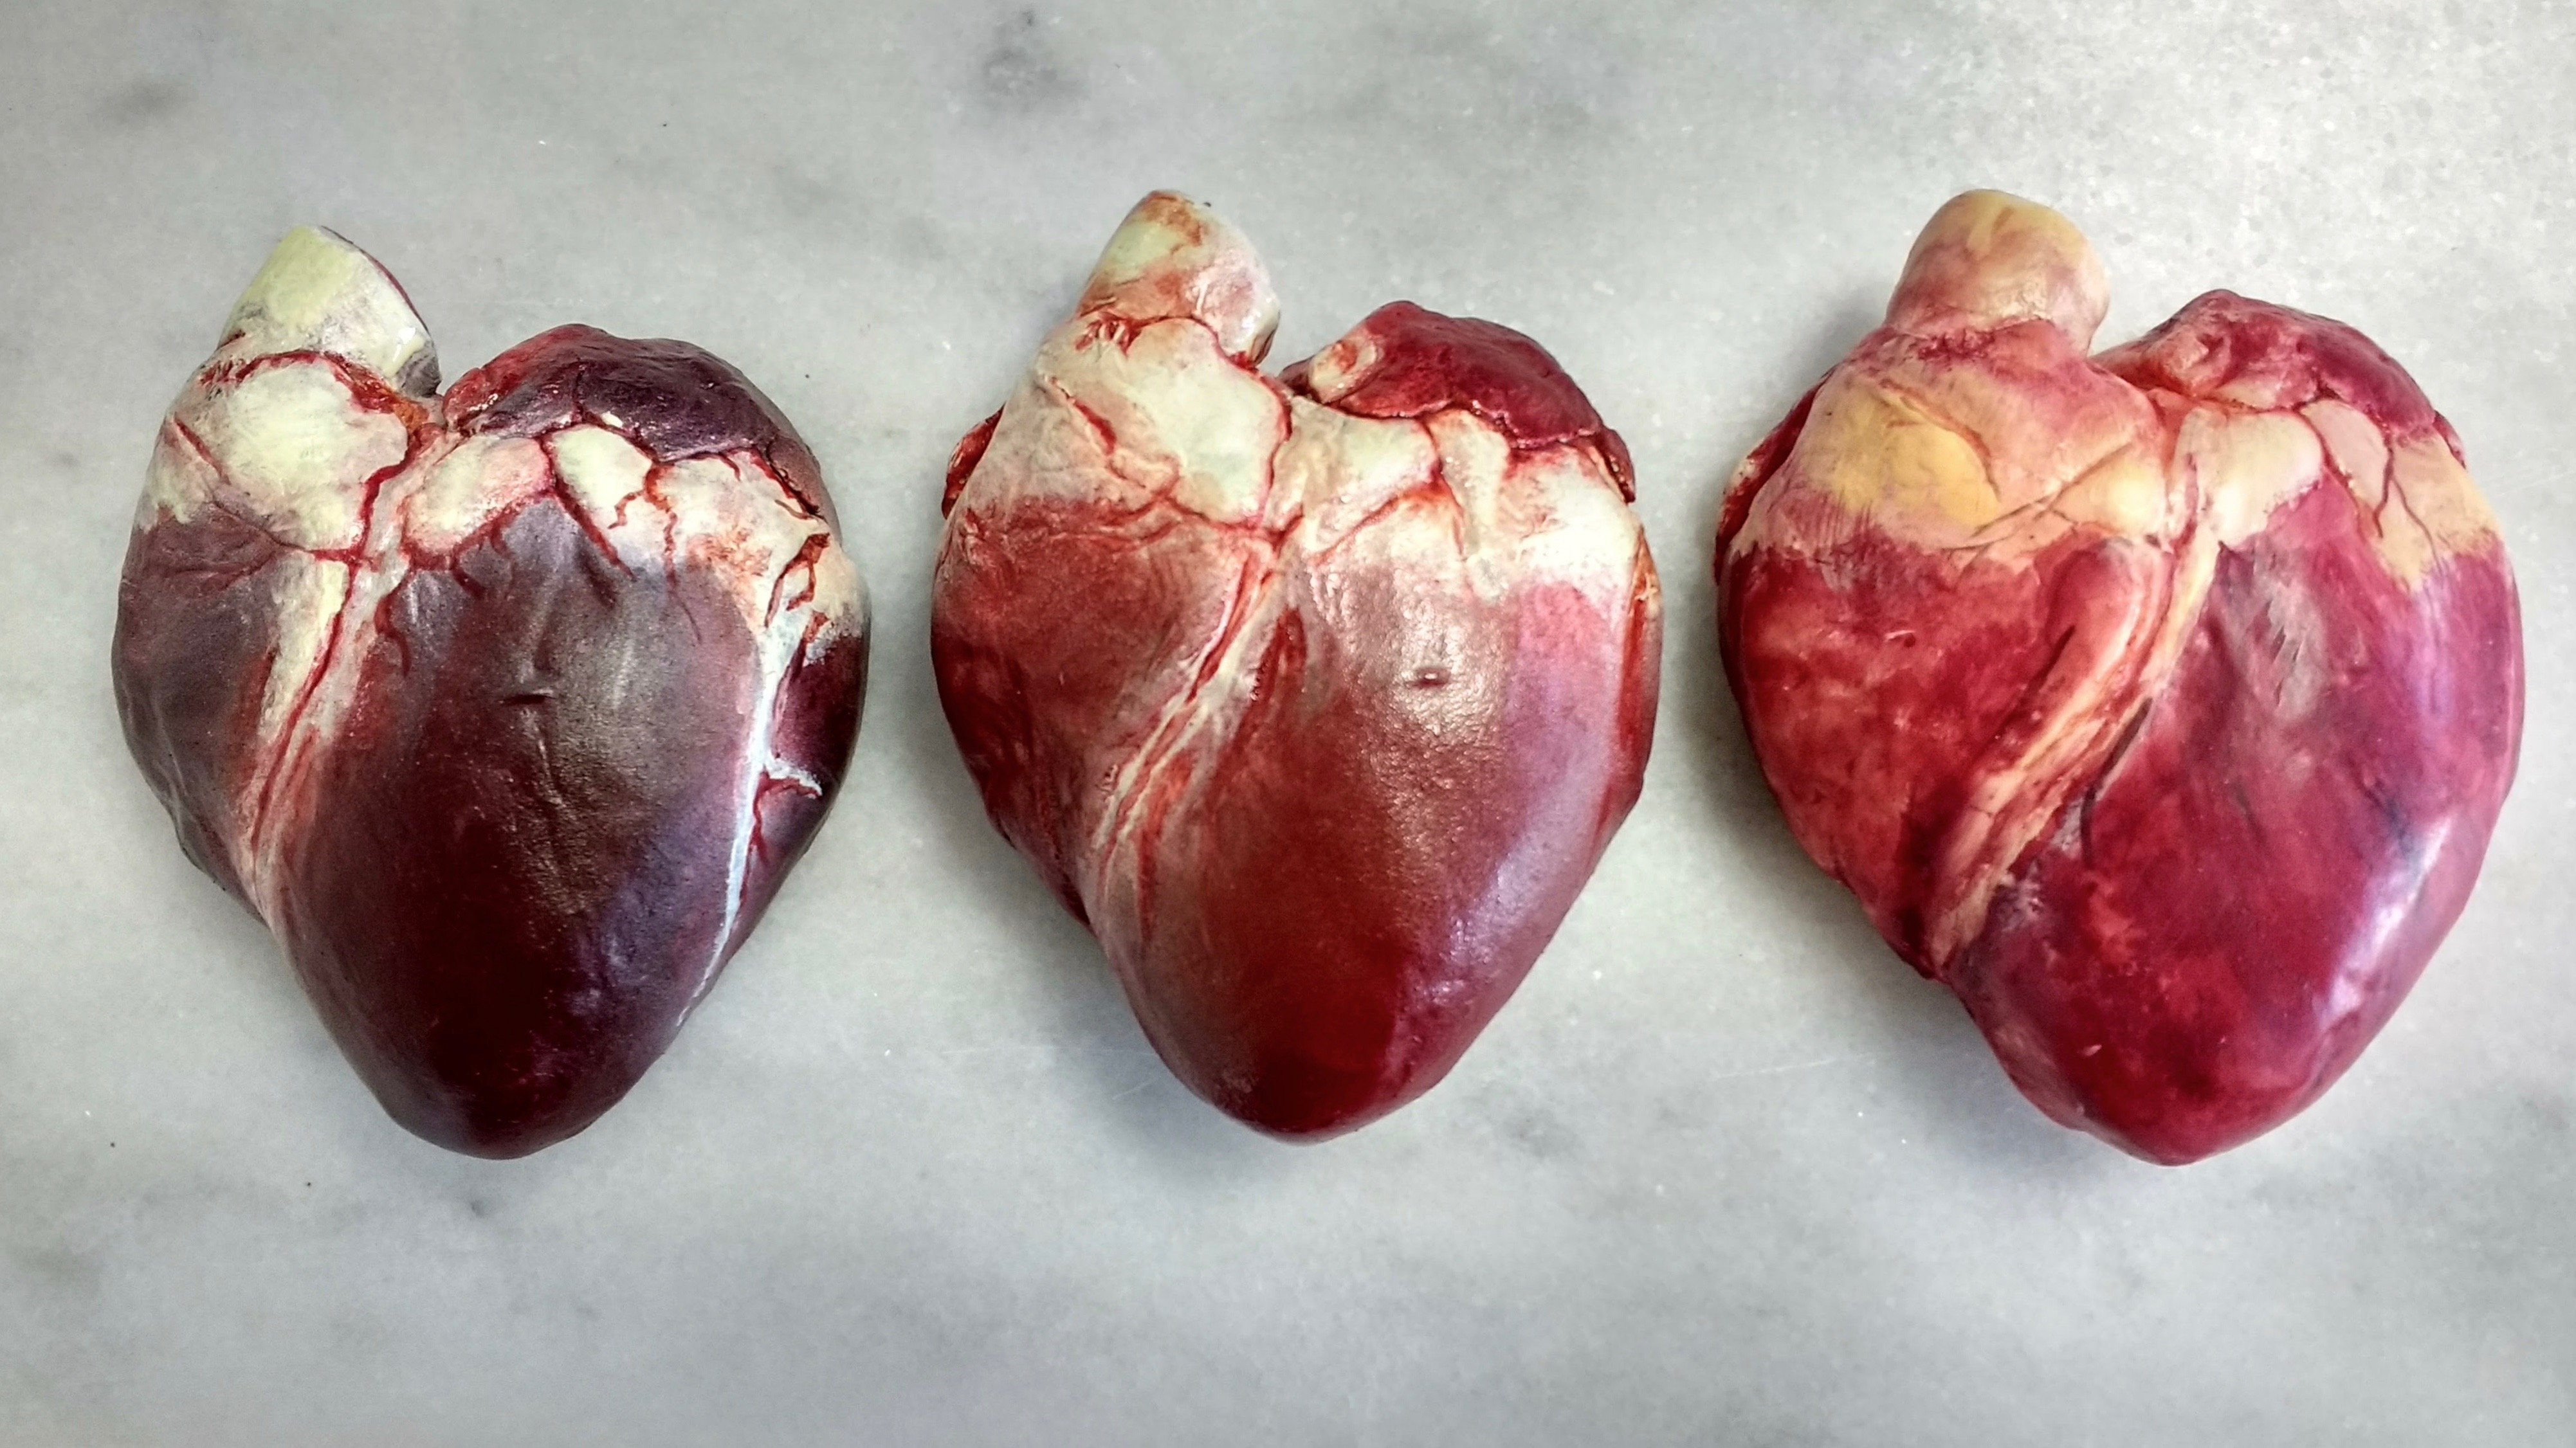 Chocolate Human Heart | The Edible Museum